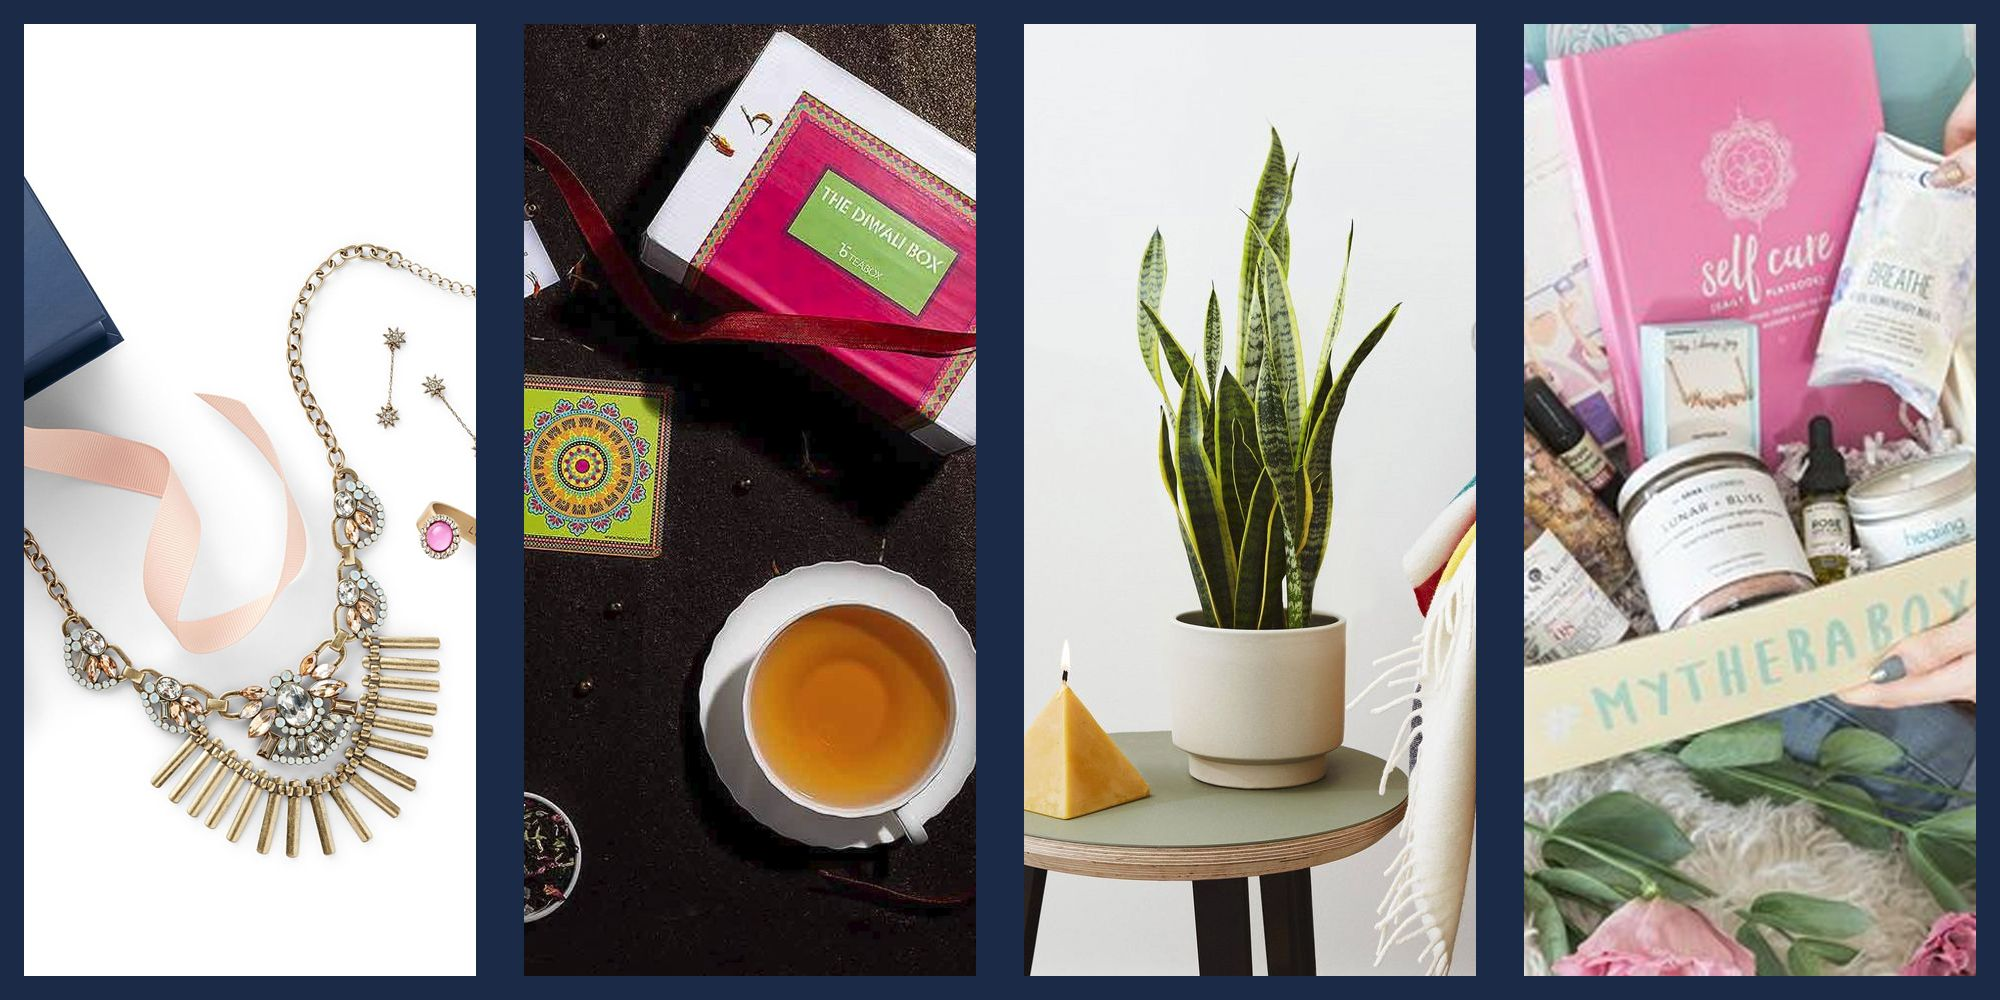 30 Best Monthly Subscription Boxes To Gift In 2020 Top Subscription Boxes To Try